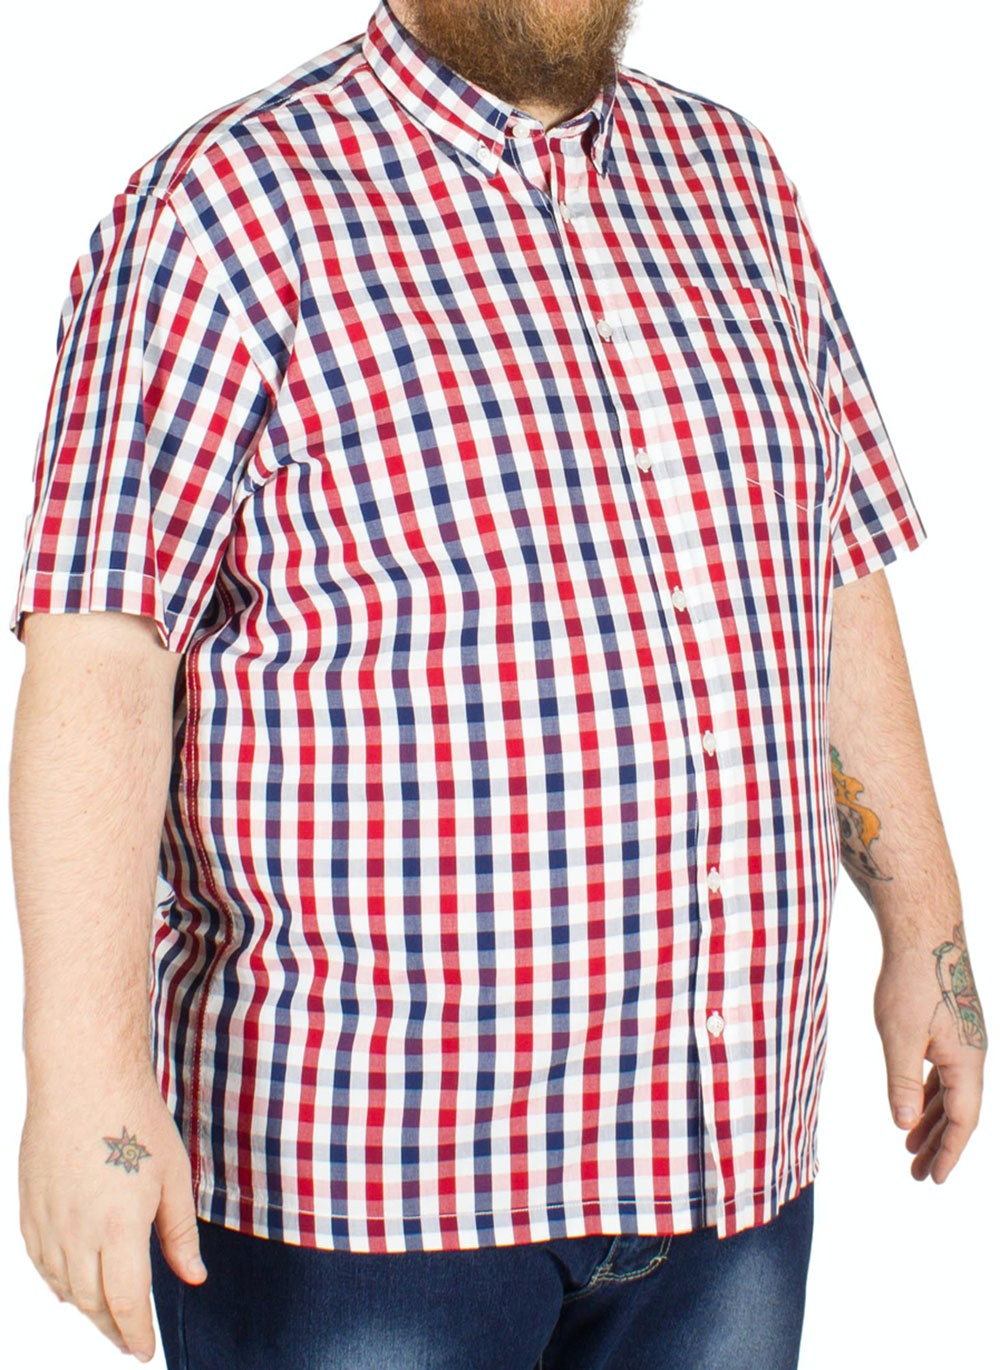 Bigdude Short Sleeve Check Shirt Navy/Red